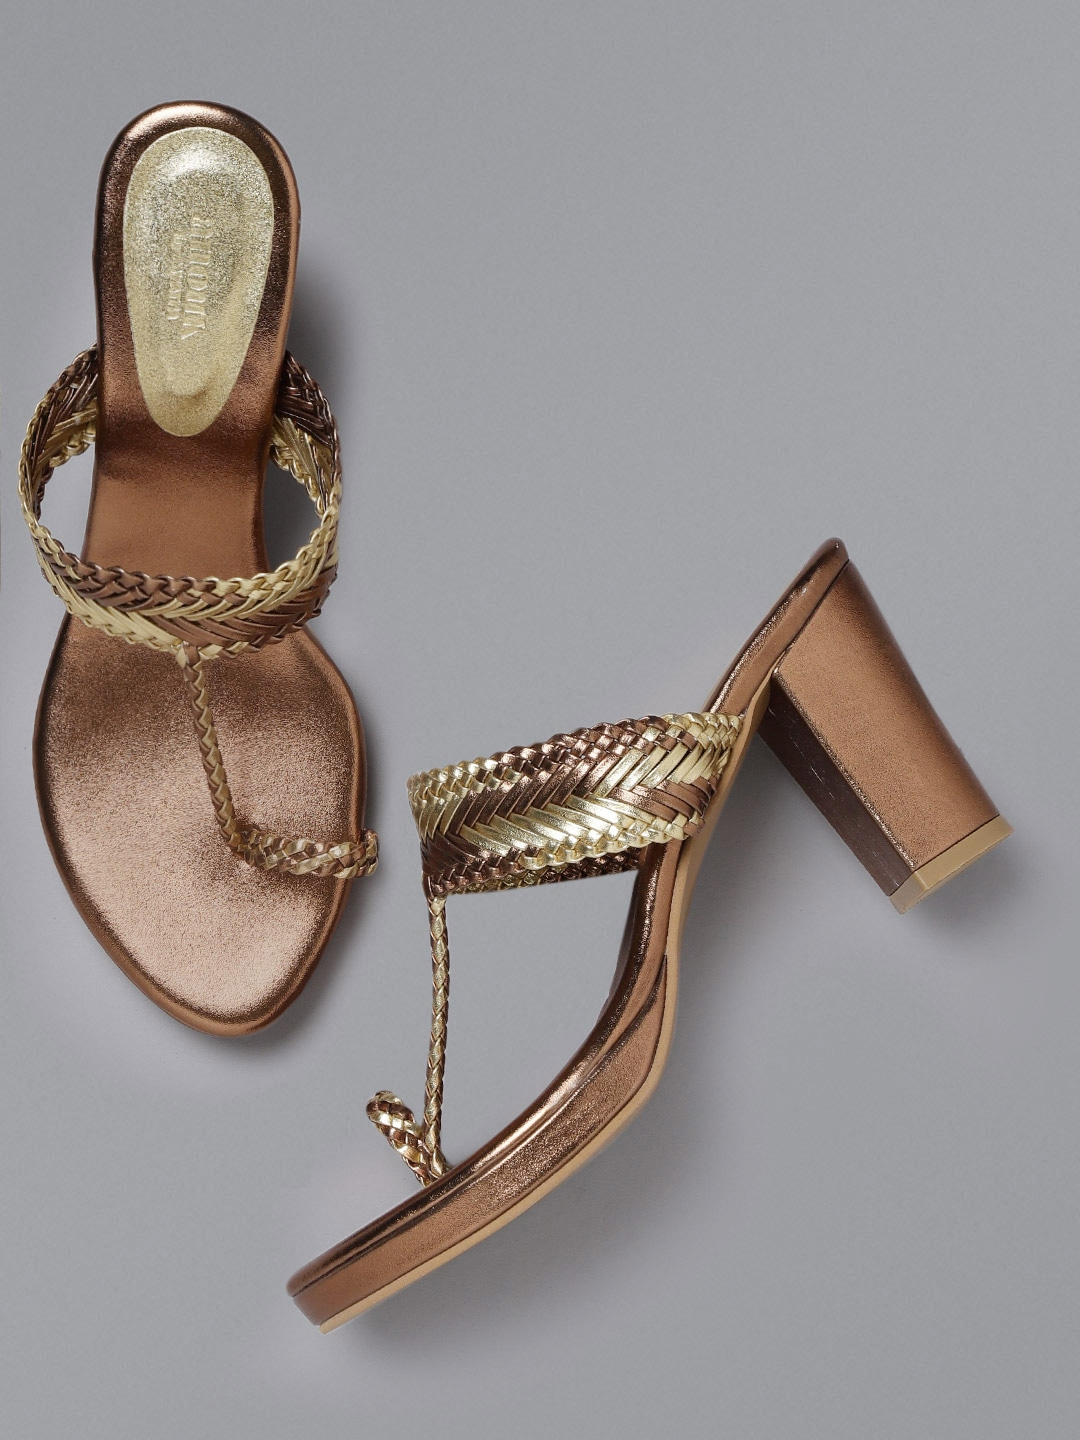 Gold-Toned Braided One Toe Heels